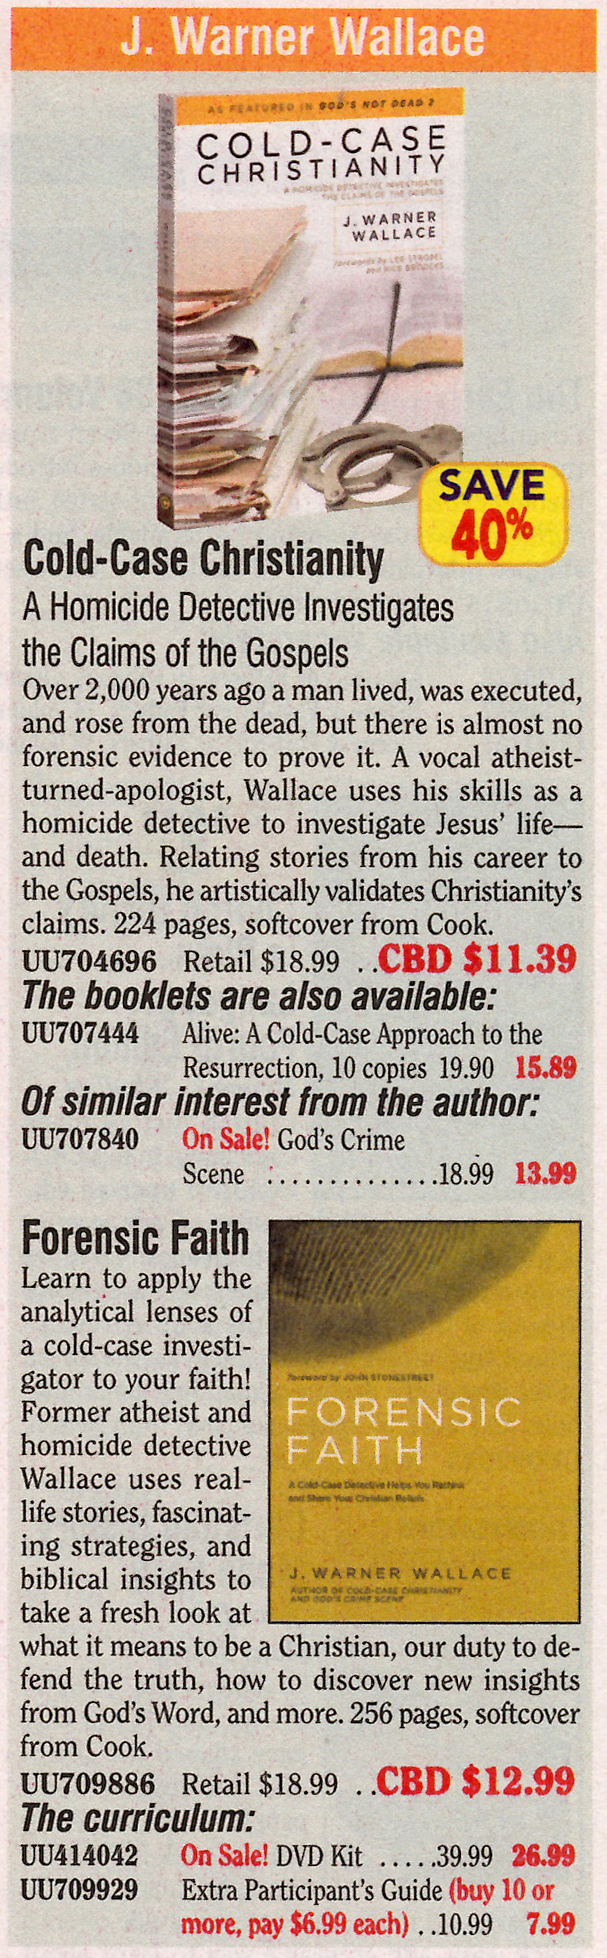 Pin by J. Warner Wallace on Cold Case Christianity Cold